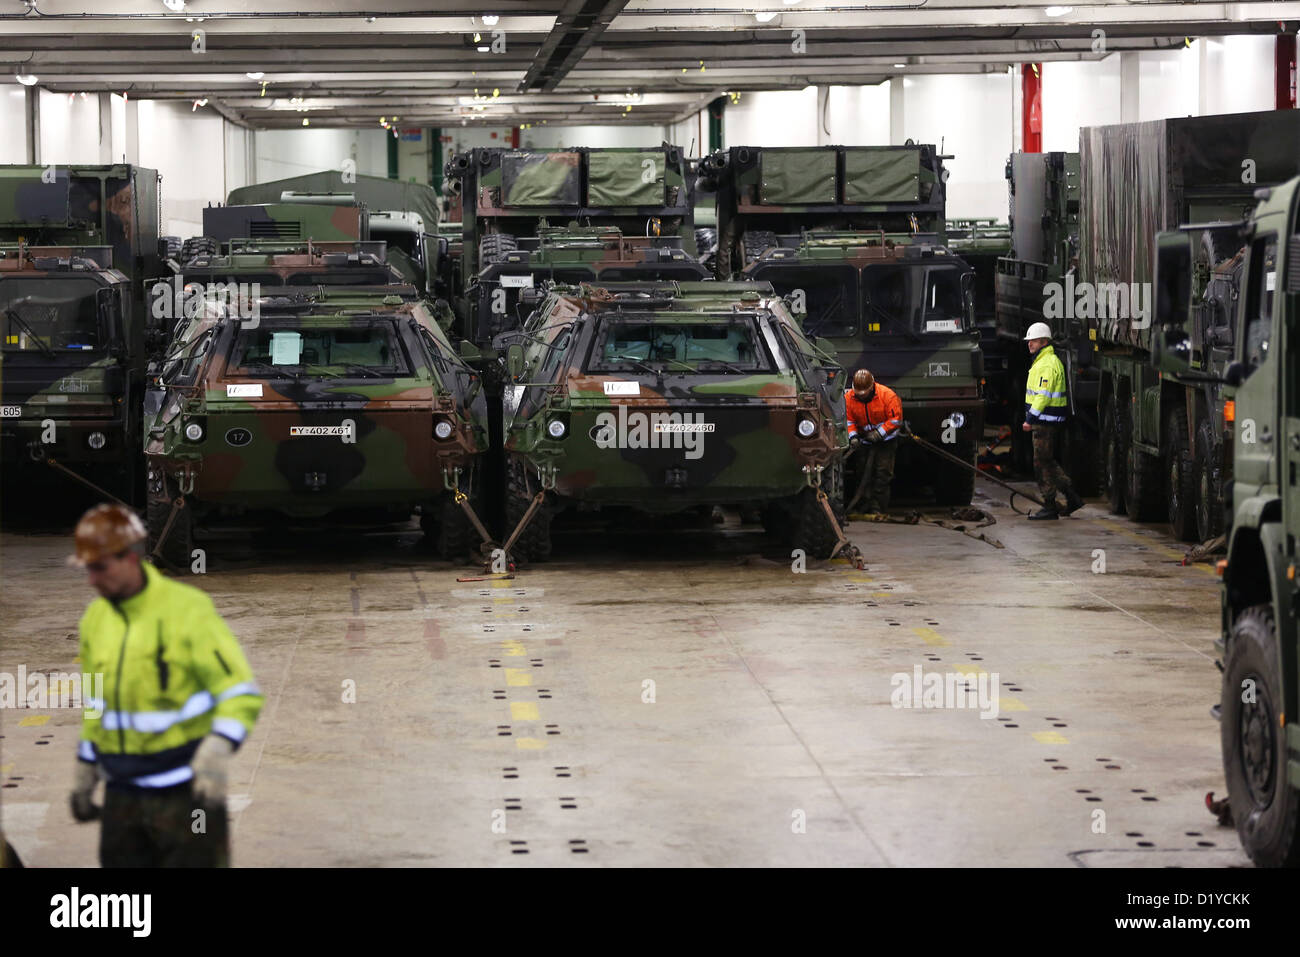 Two ABC-search-tanks \'Fuchs\' (lit. fox) and other vehicles for the ...